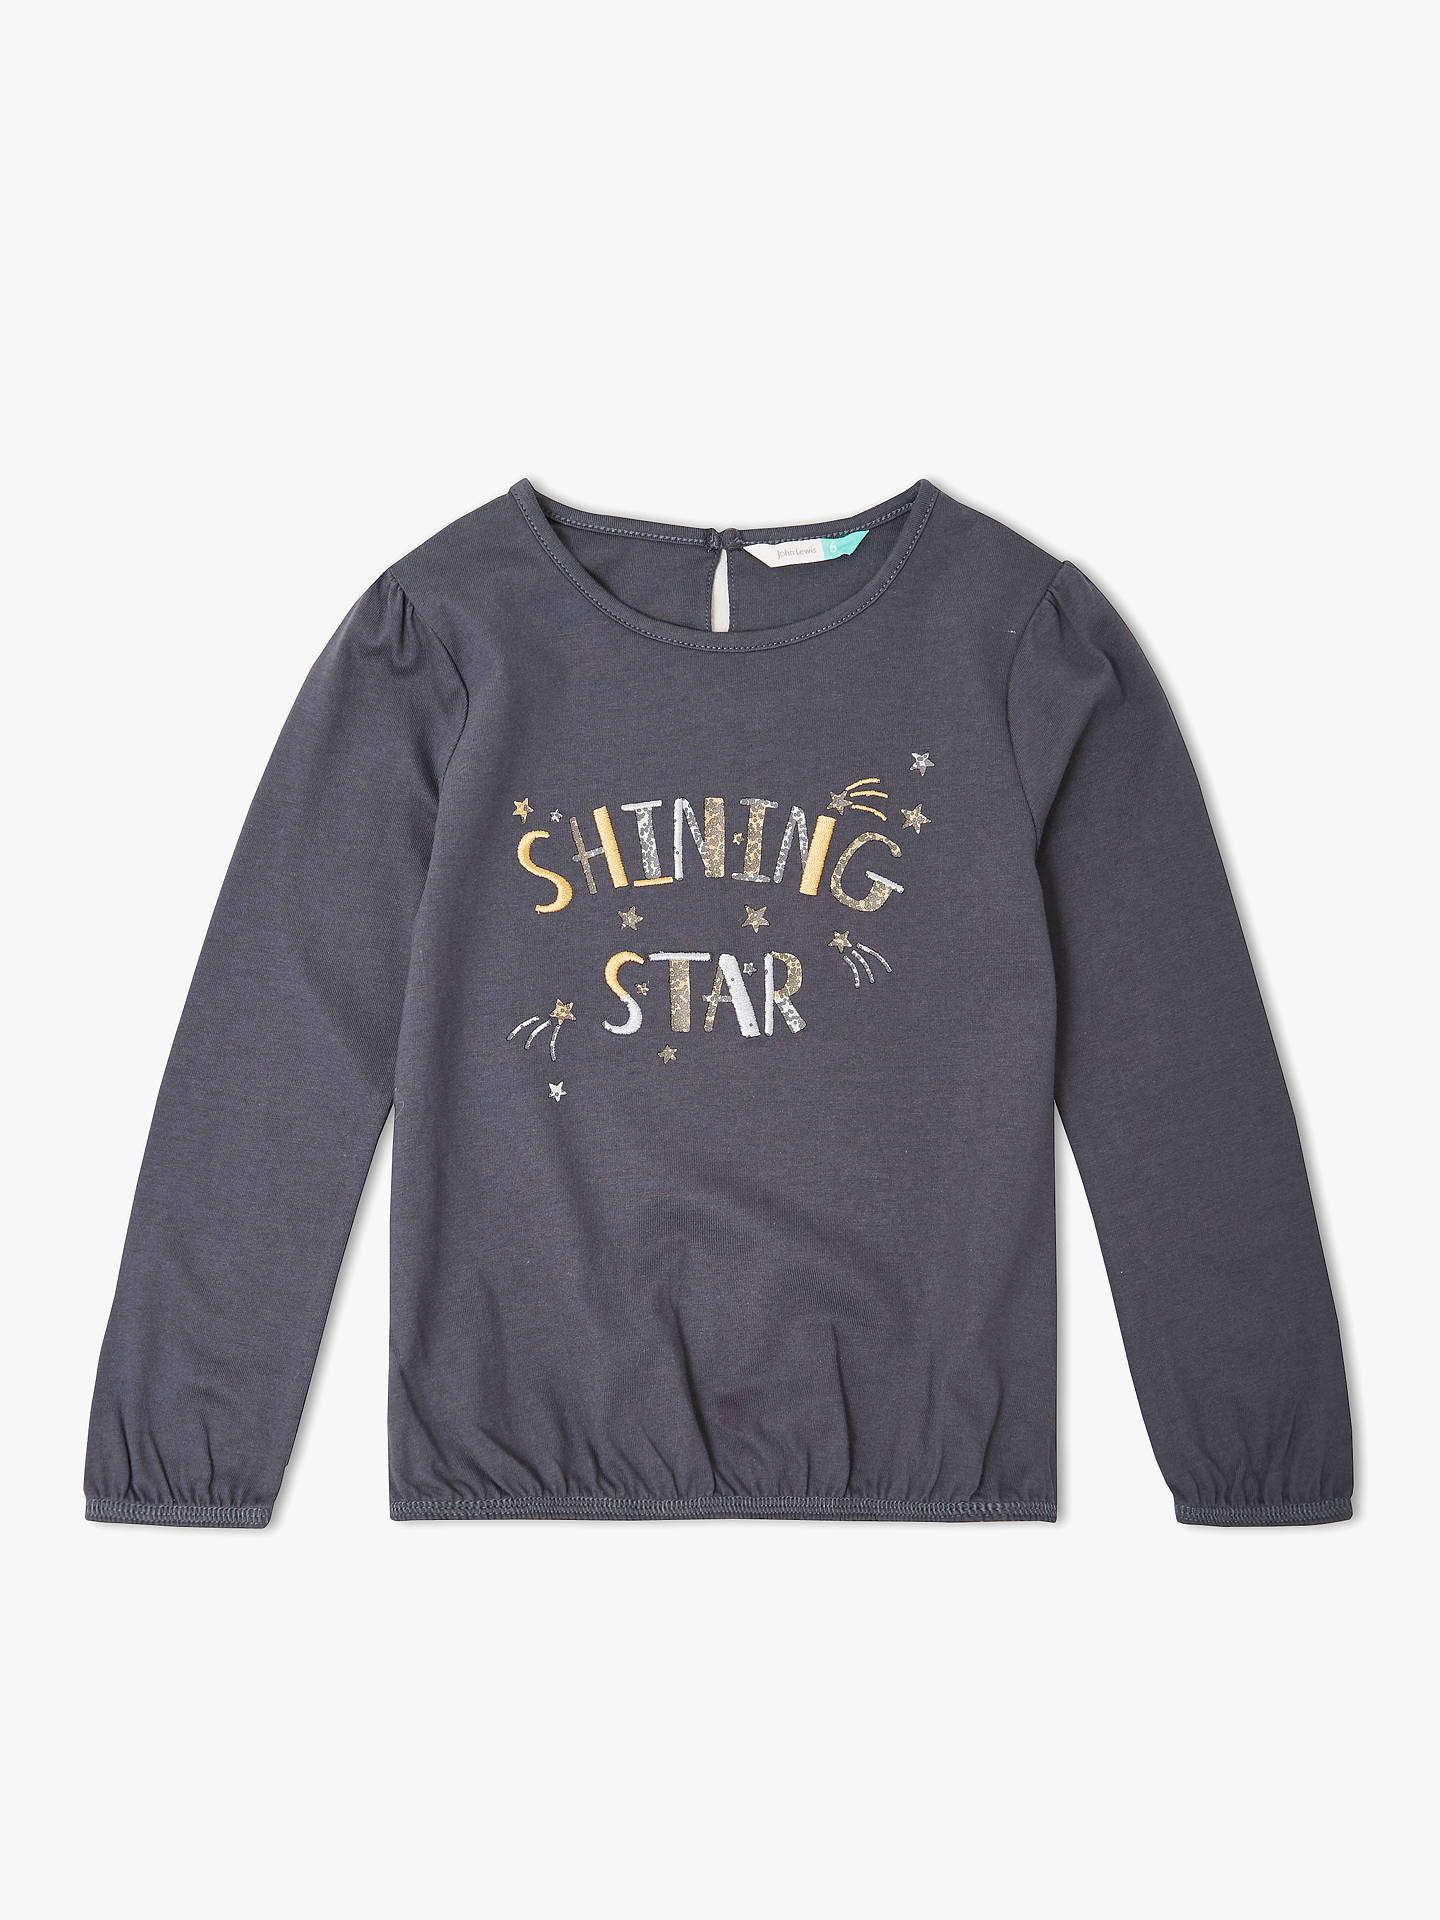 BuyJohn Lewis & Partners Girls' Shining Star T-Shirt, Patriot Blue, 2 years Online at johnlewis.com